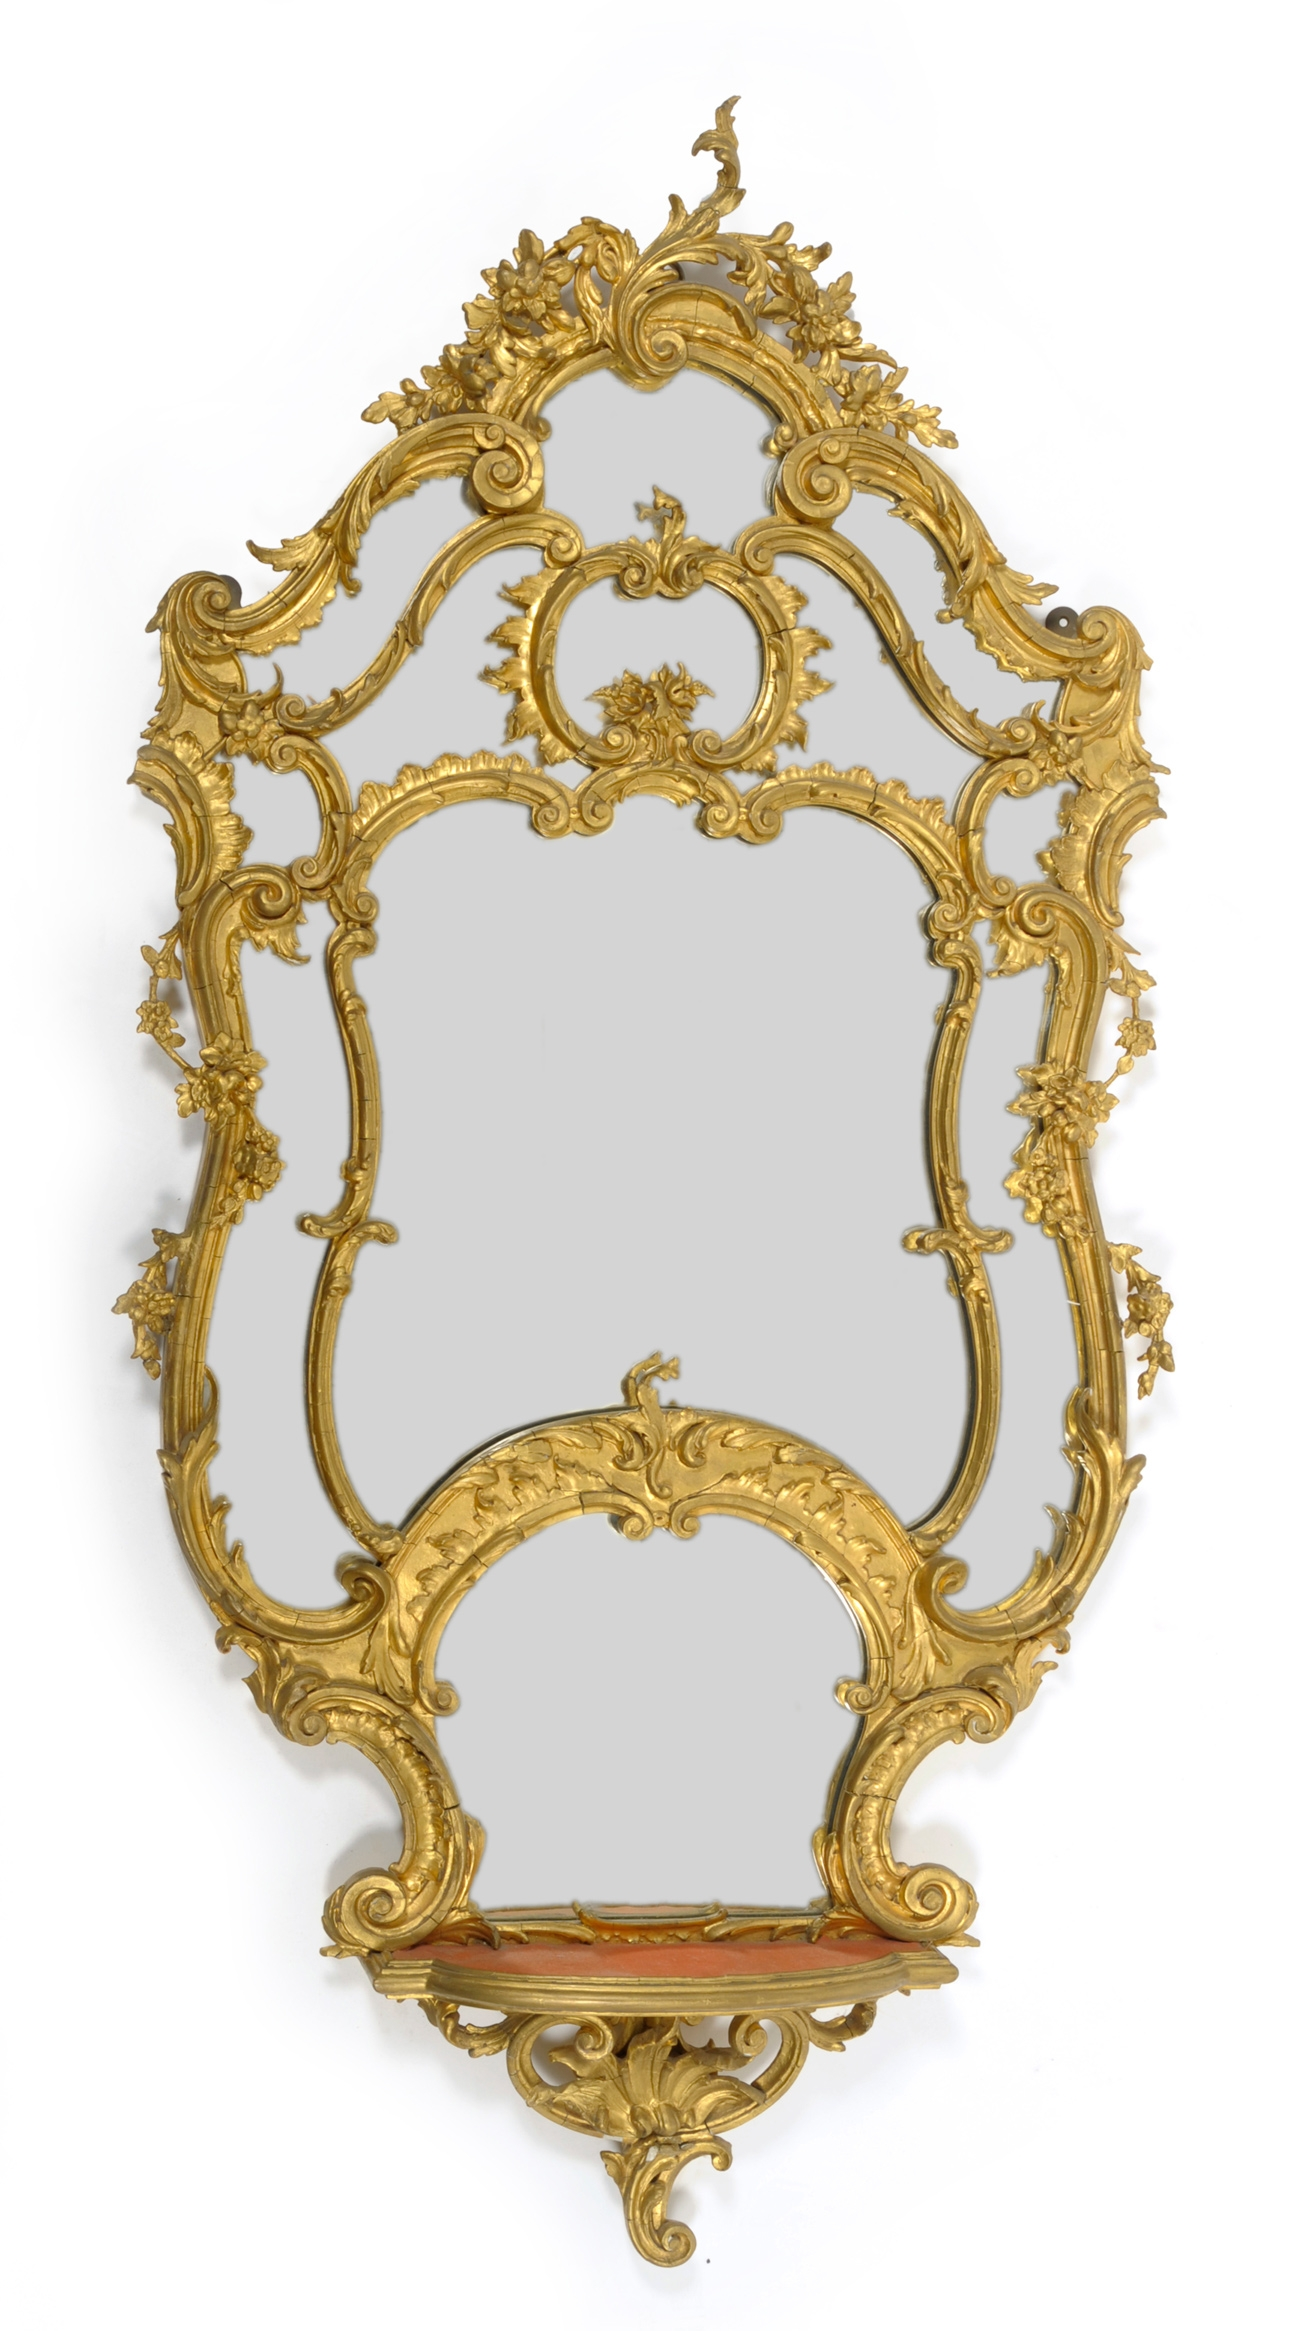 Tennants Auctioneers An 18th Century Style Rococo Gilt Gesso Wall Intended For Rococo Wall Mirror (Image 13 of 15)